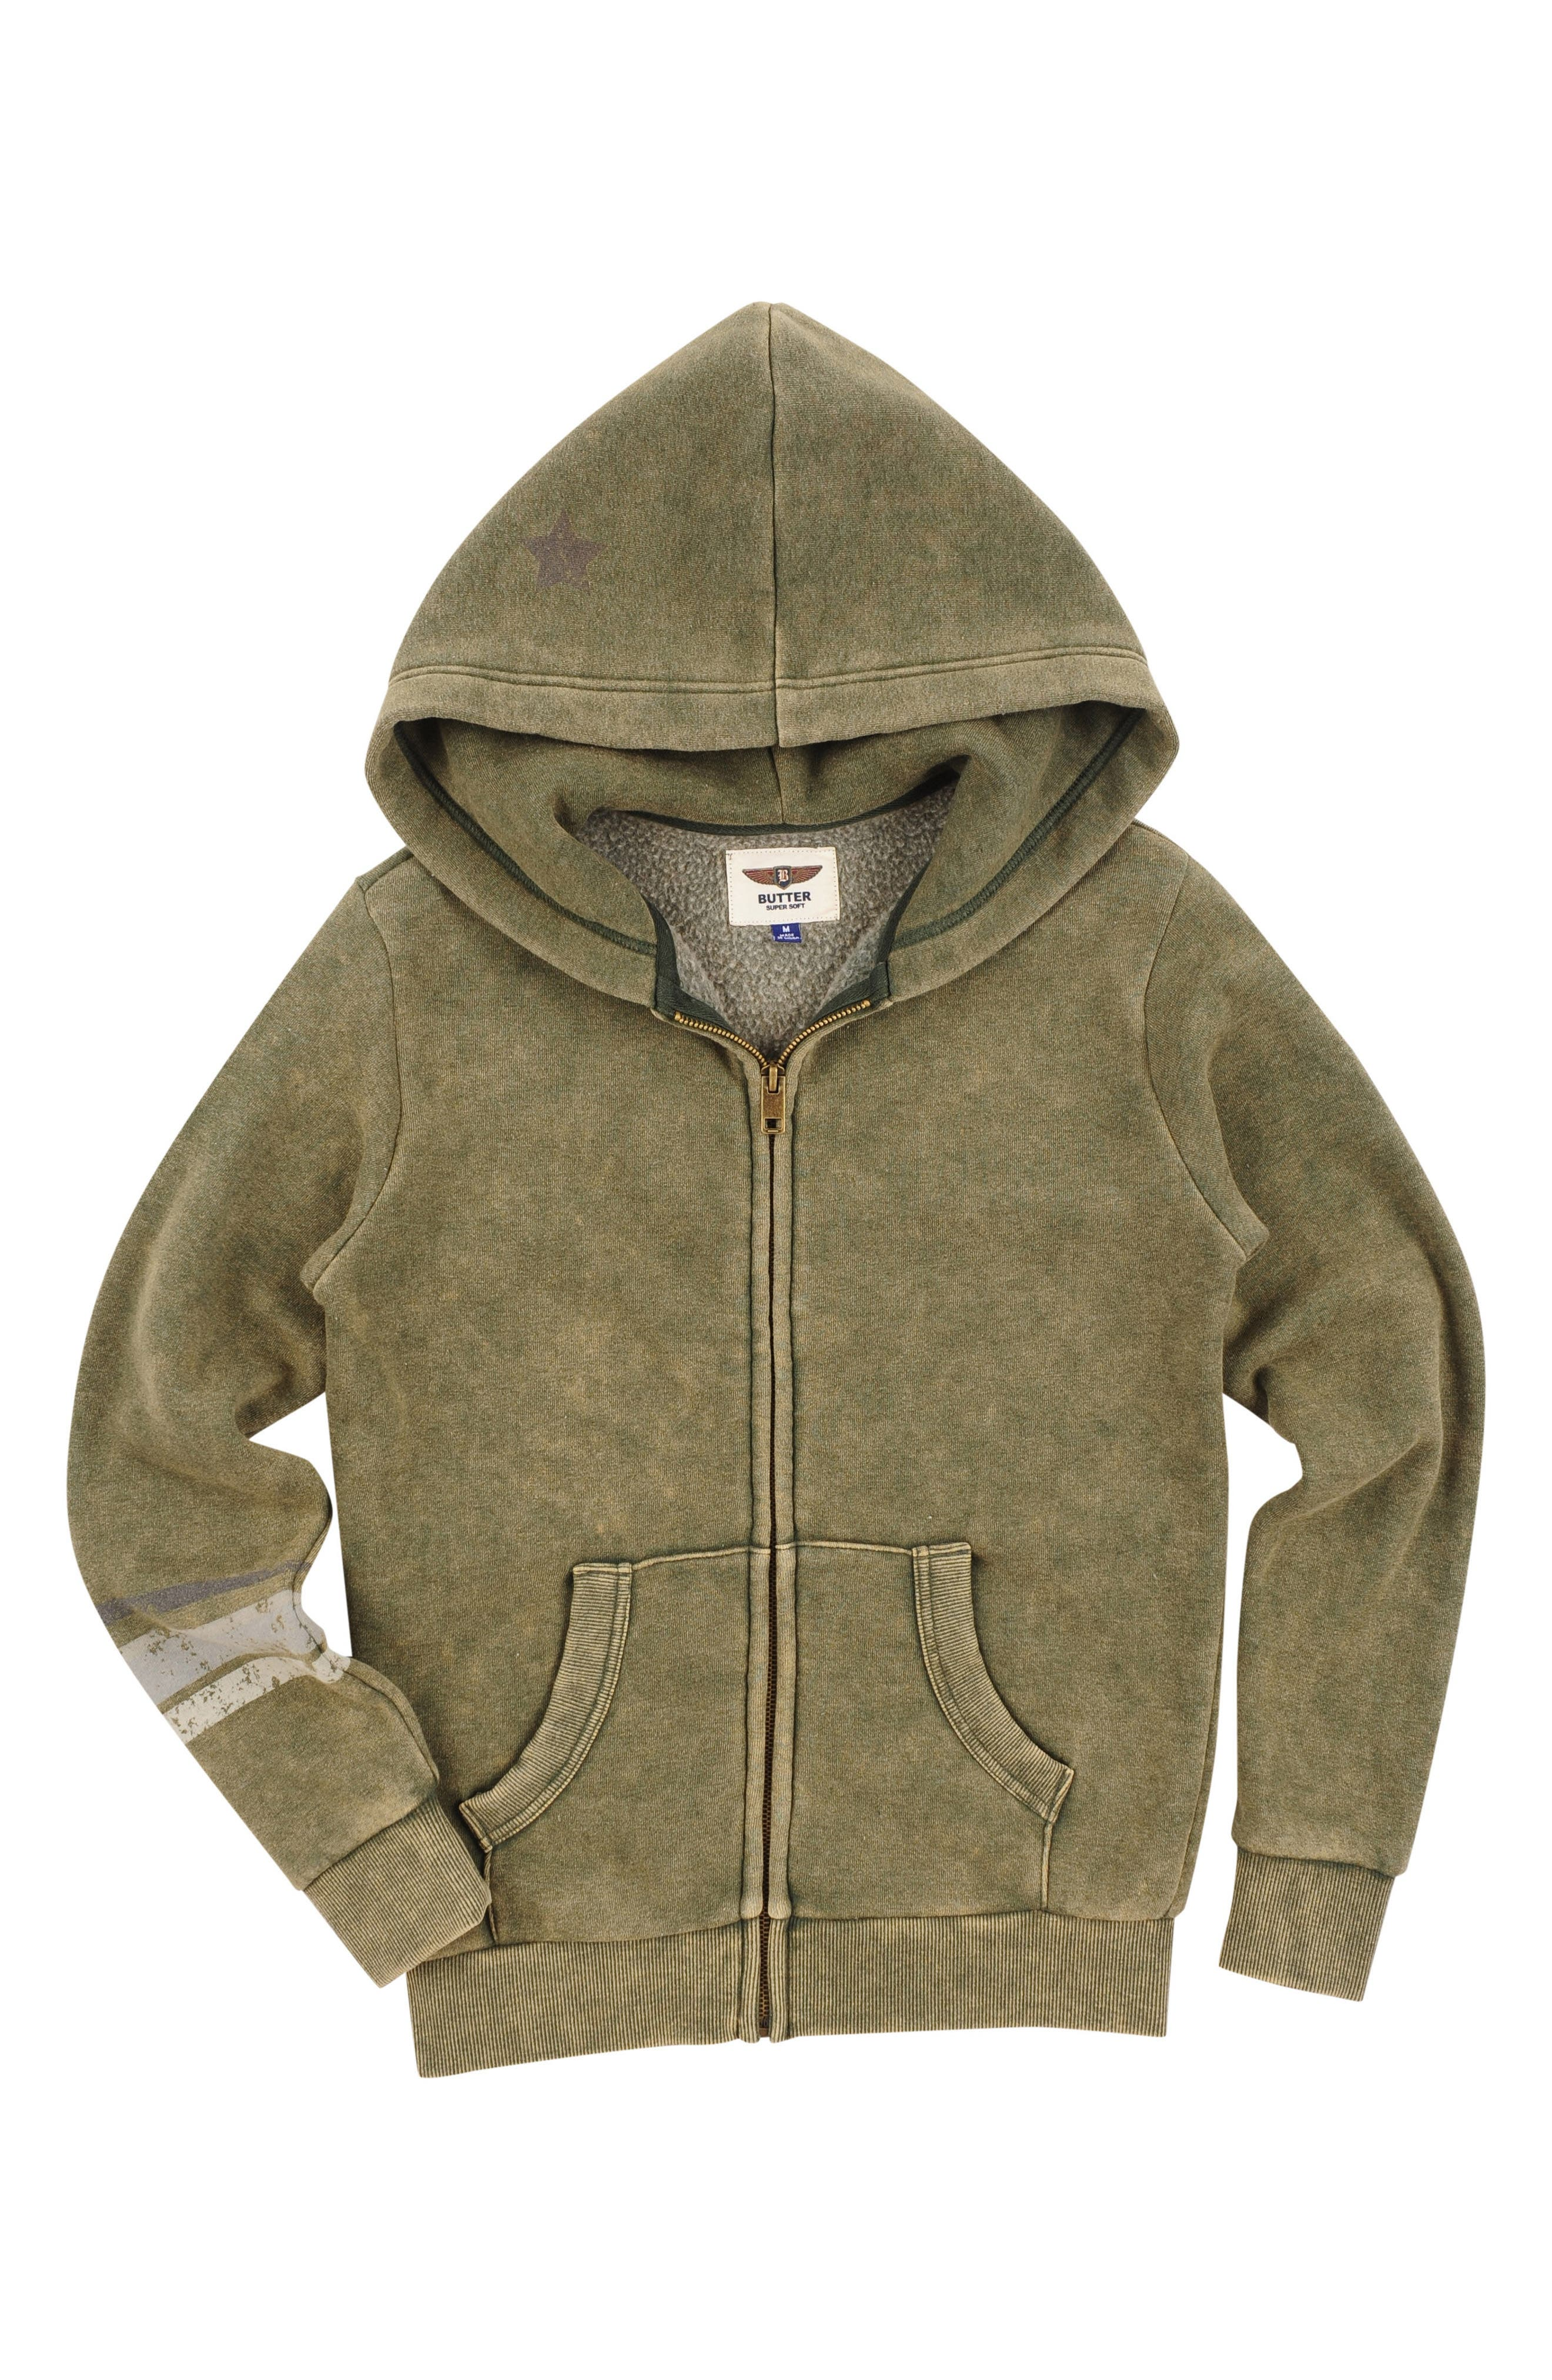 Alternate Image 1 Selected - Butter Super Soft Graphic Zip Hoodie (Little Boys)